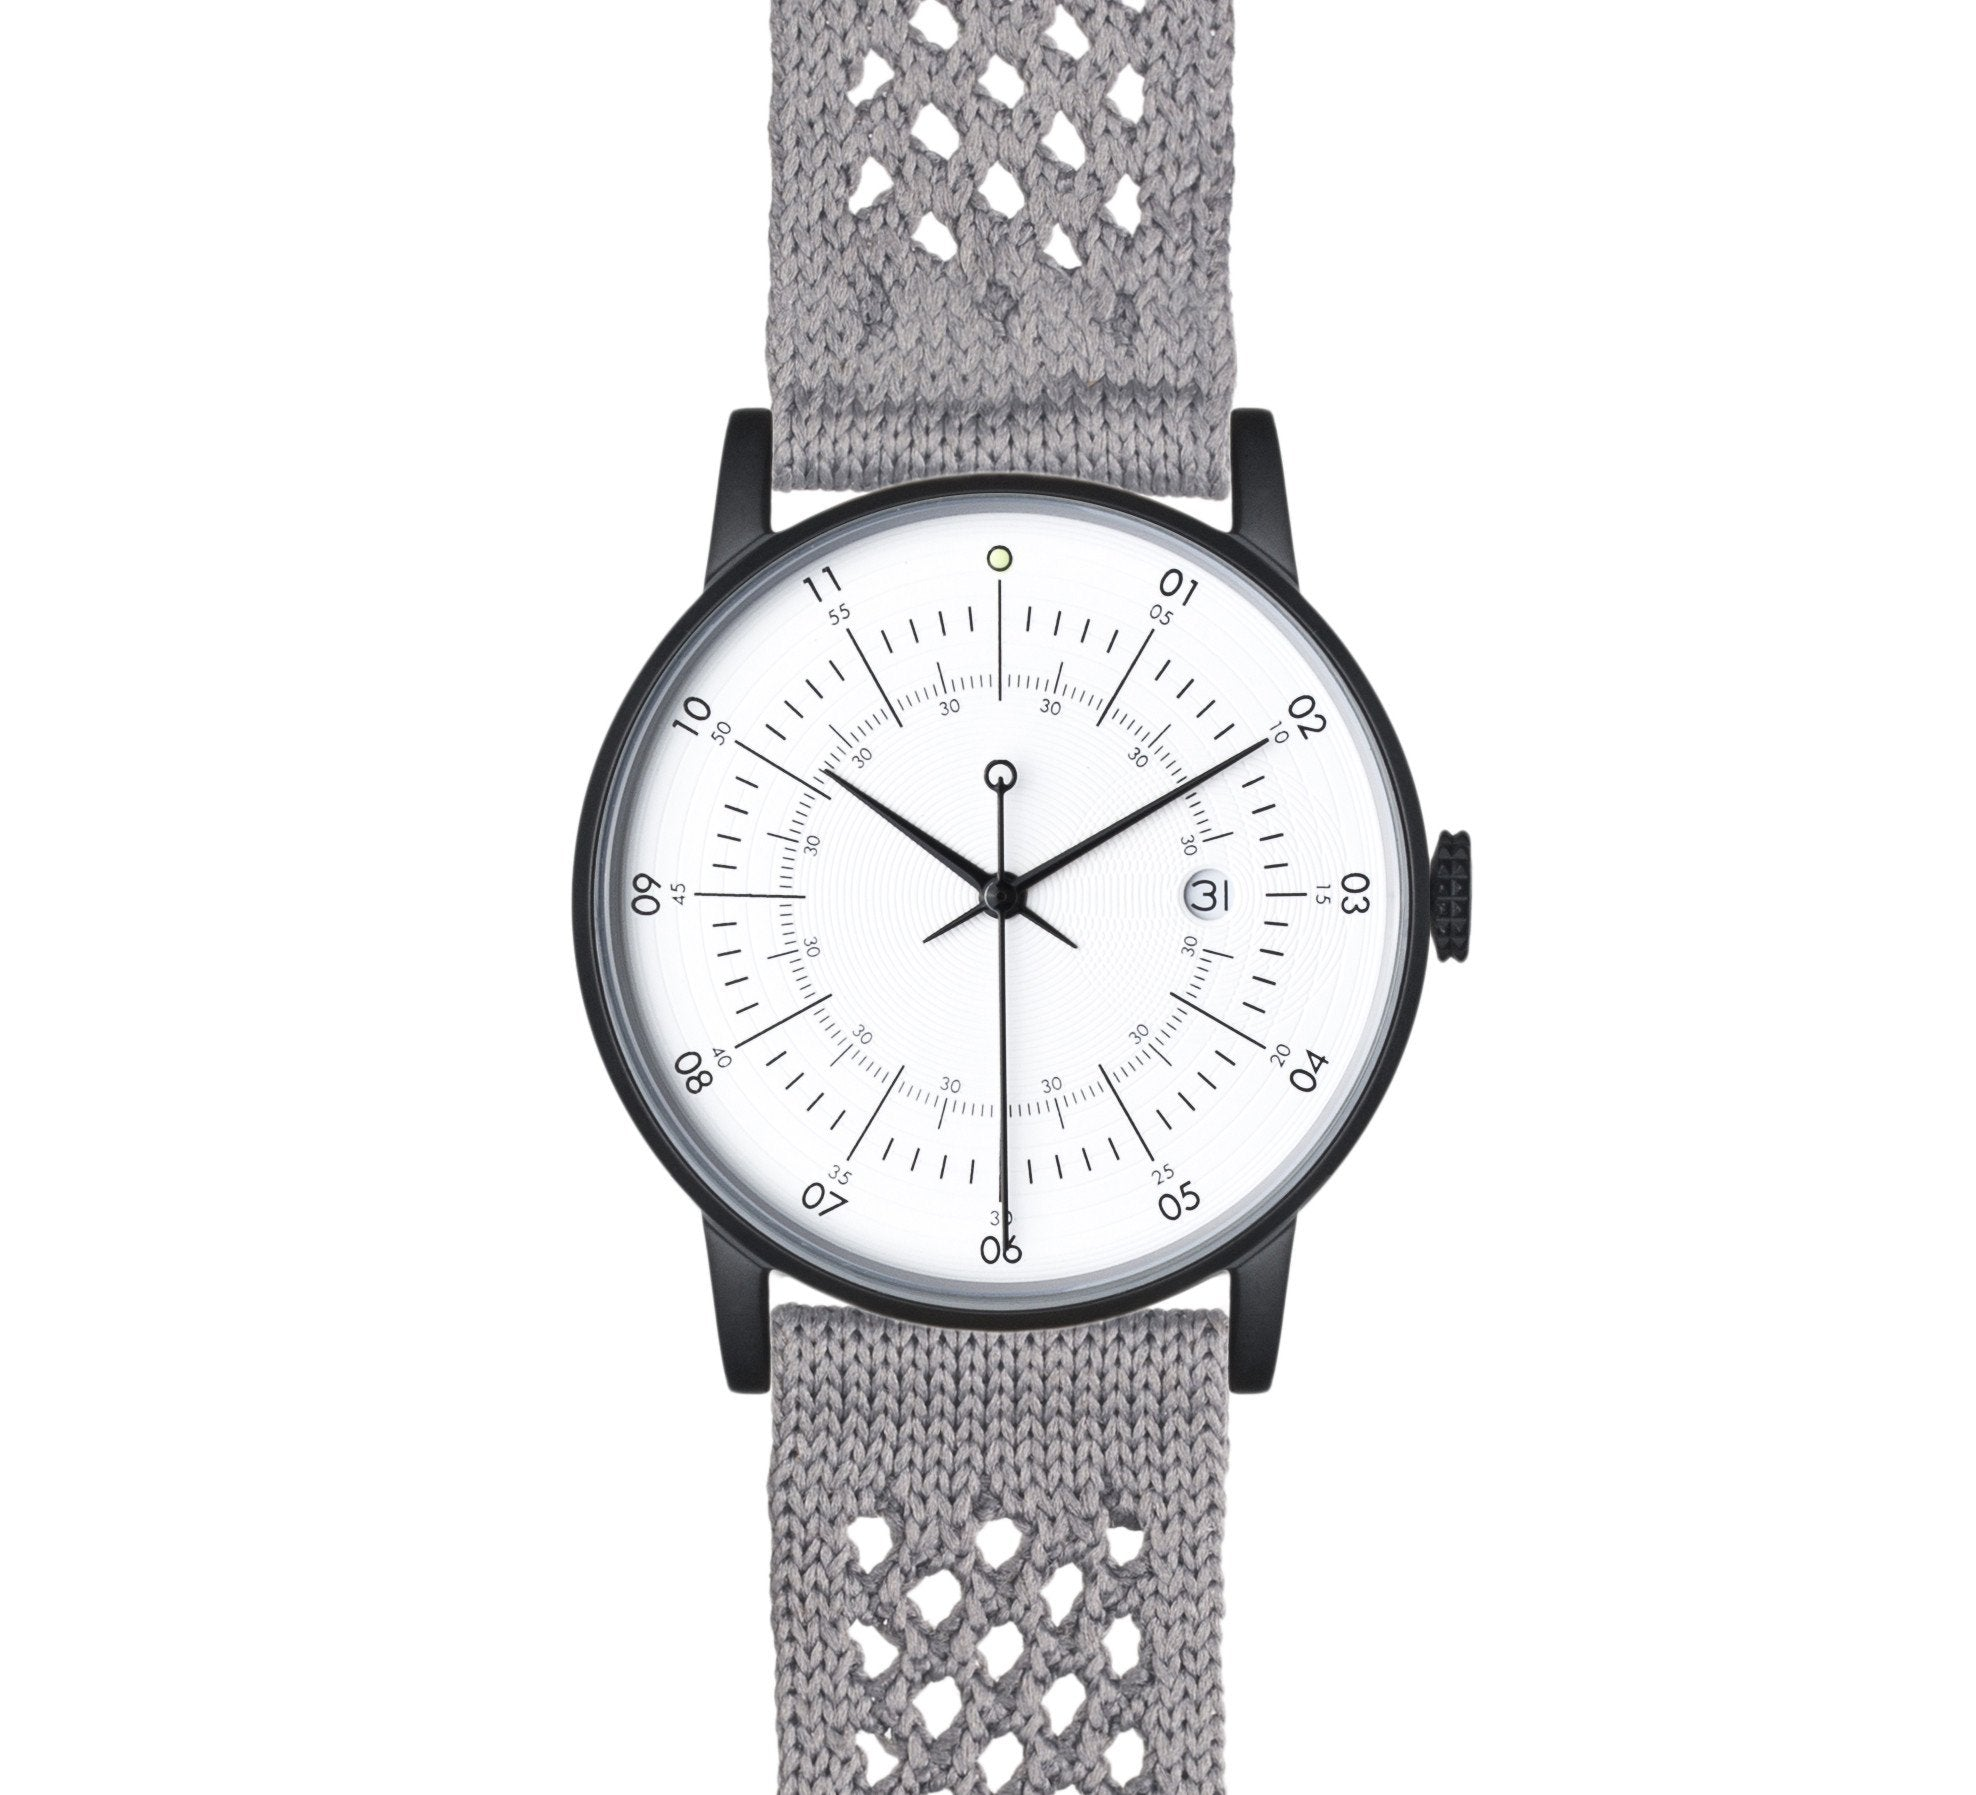 SQ38 Plano watch, PS-42